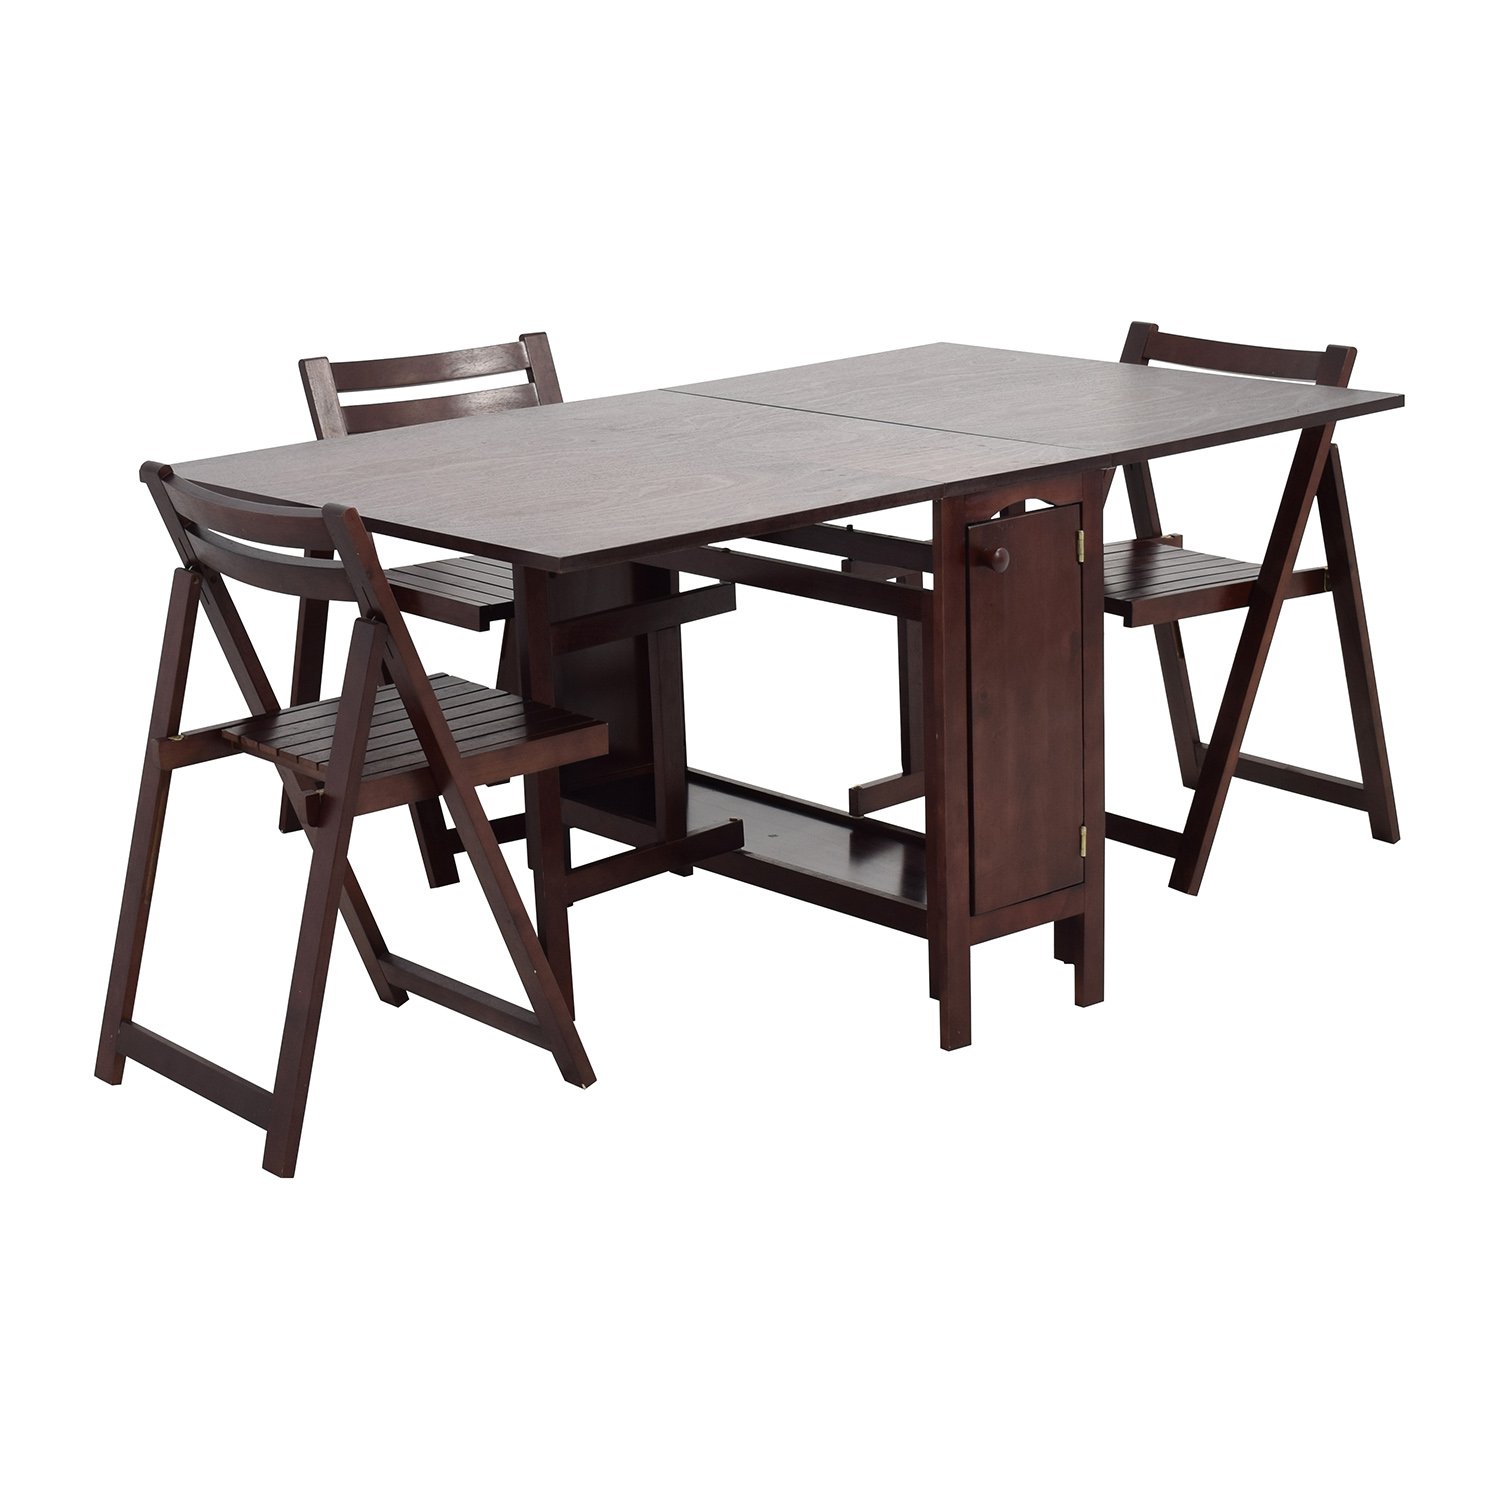 OFF Home Depot Foldable Kitchen Table with Folding Chairs